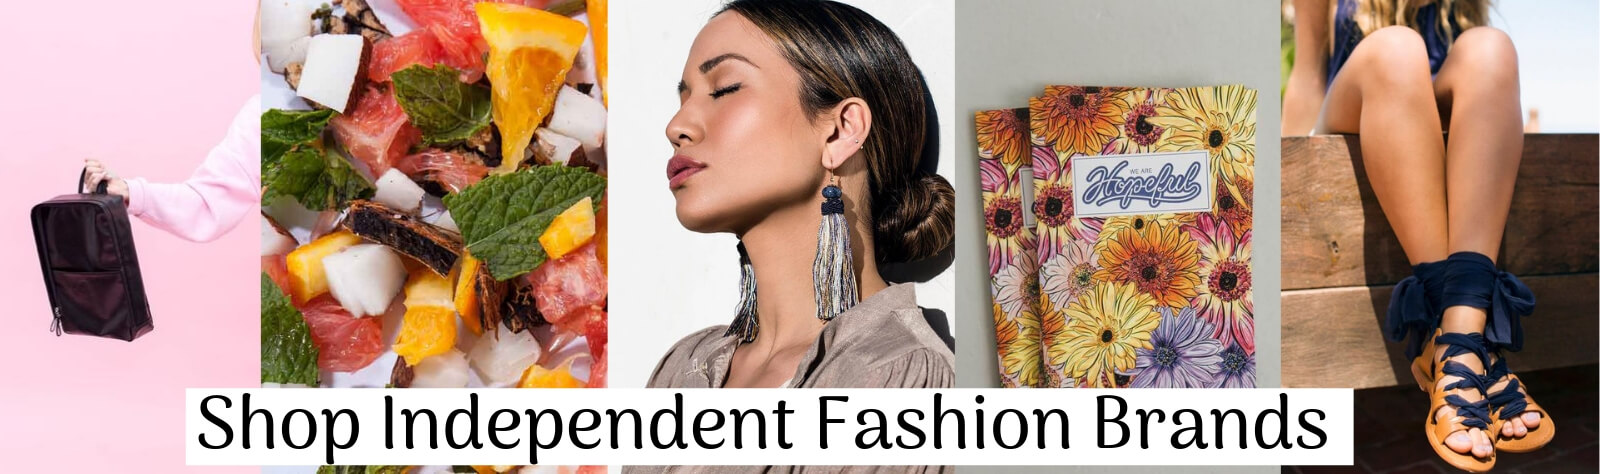 Independent Fashion Brands